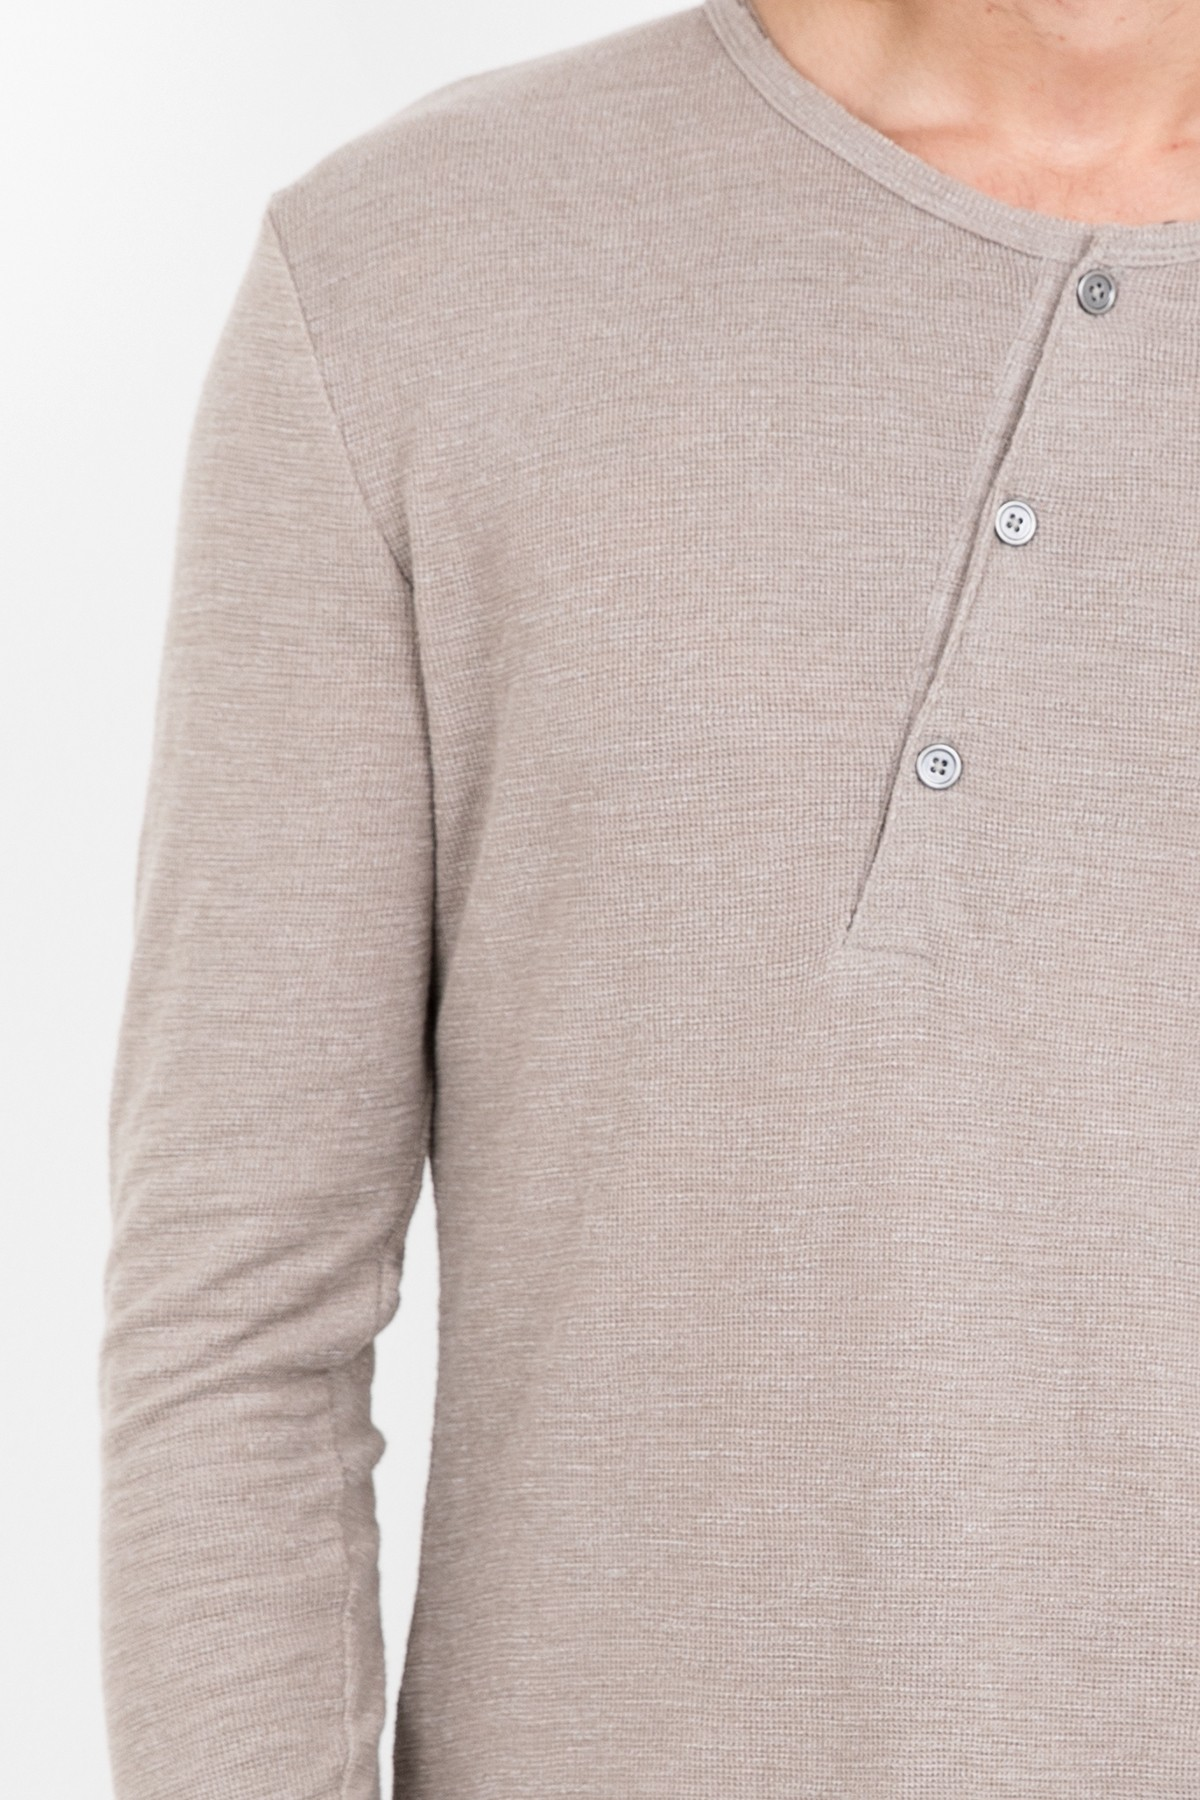 Longsleeve Theon Waffle taupe Tigha Really Sale Online For Cheap Clearance Pre Order JbqJ3yt